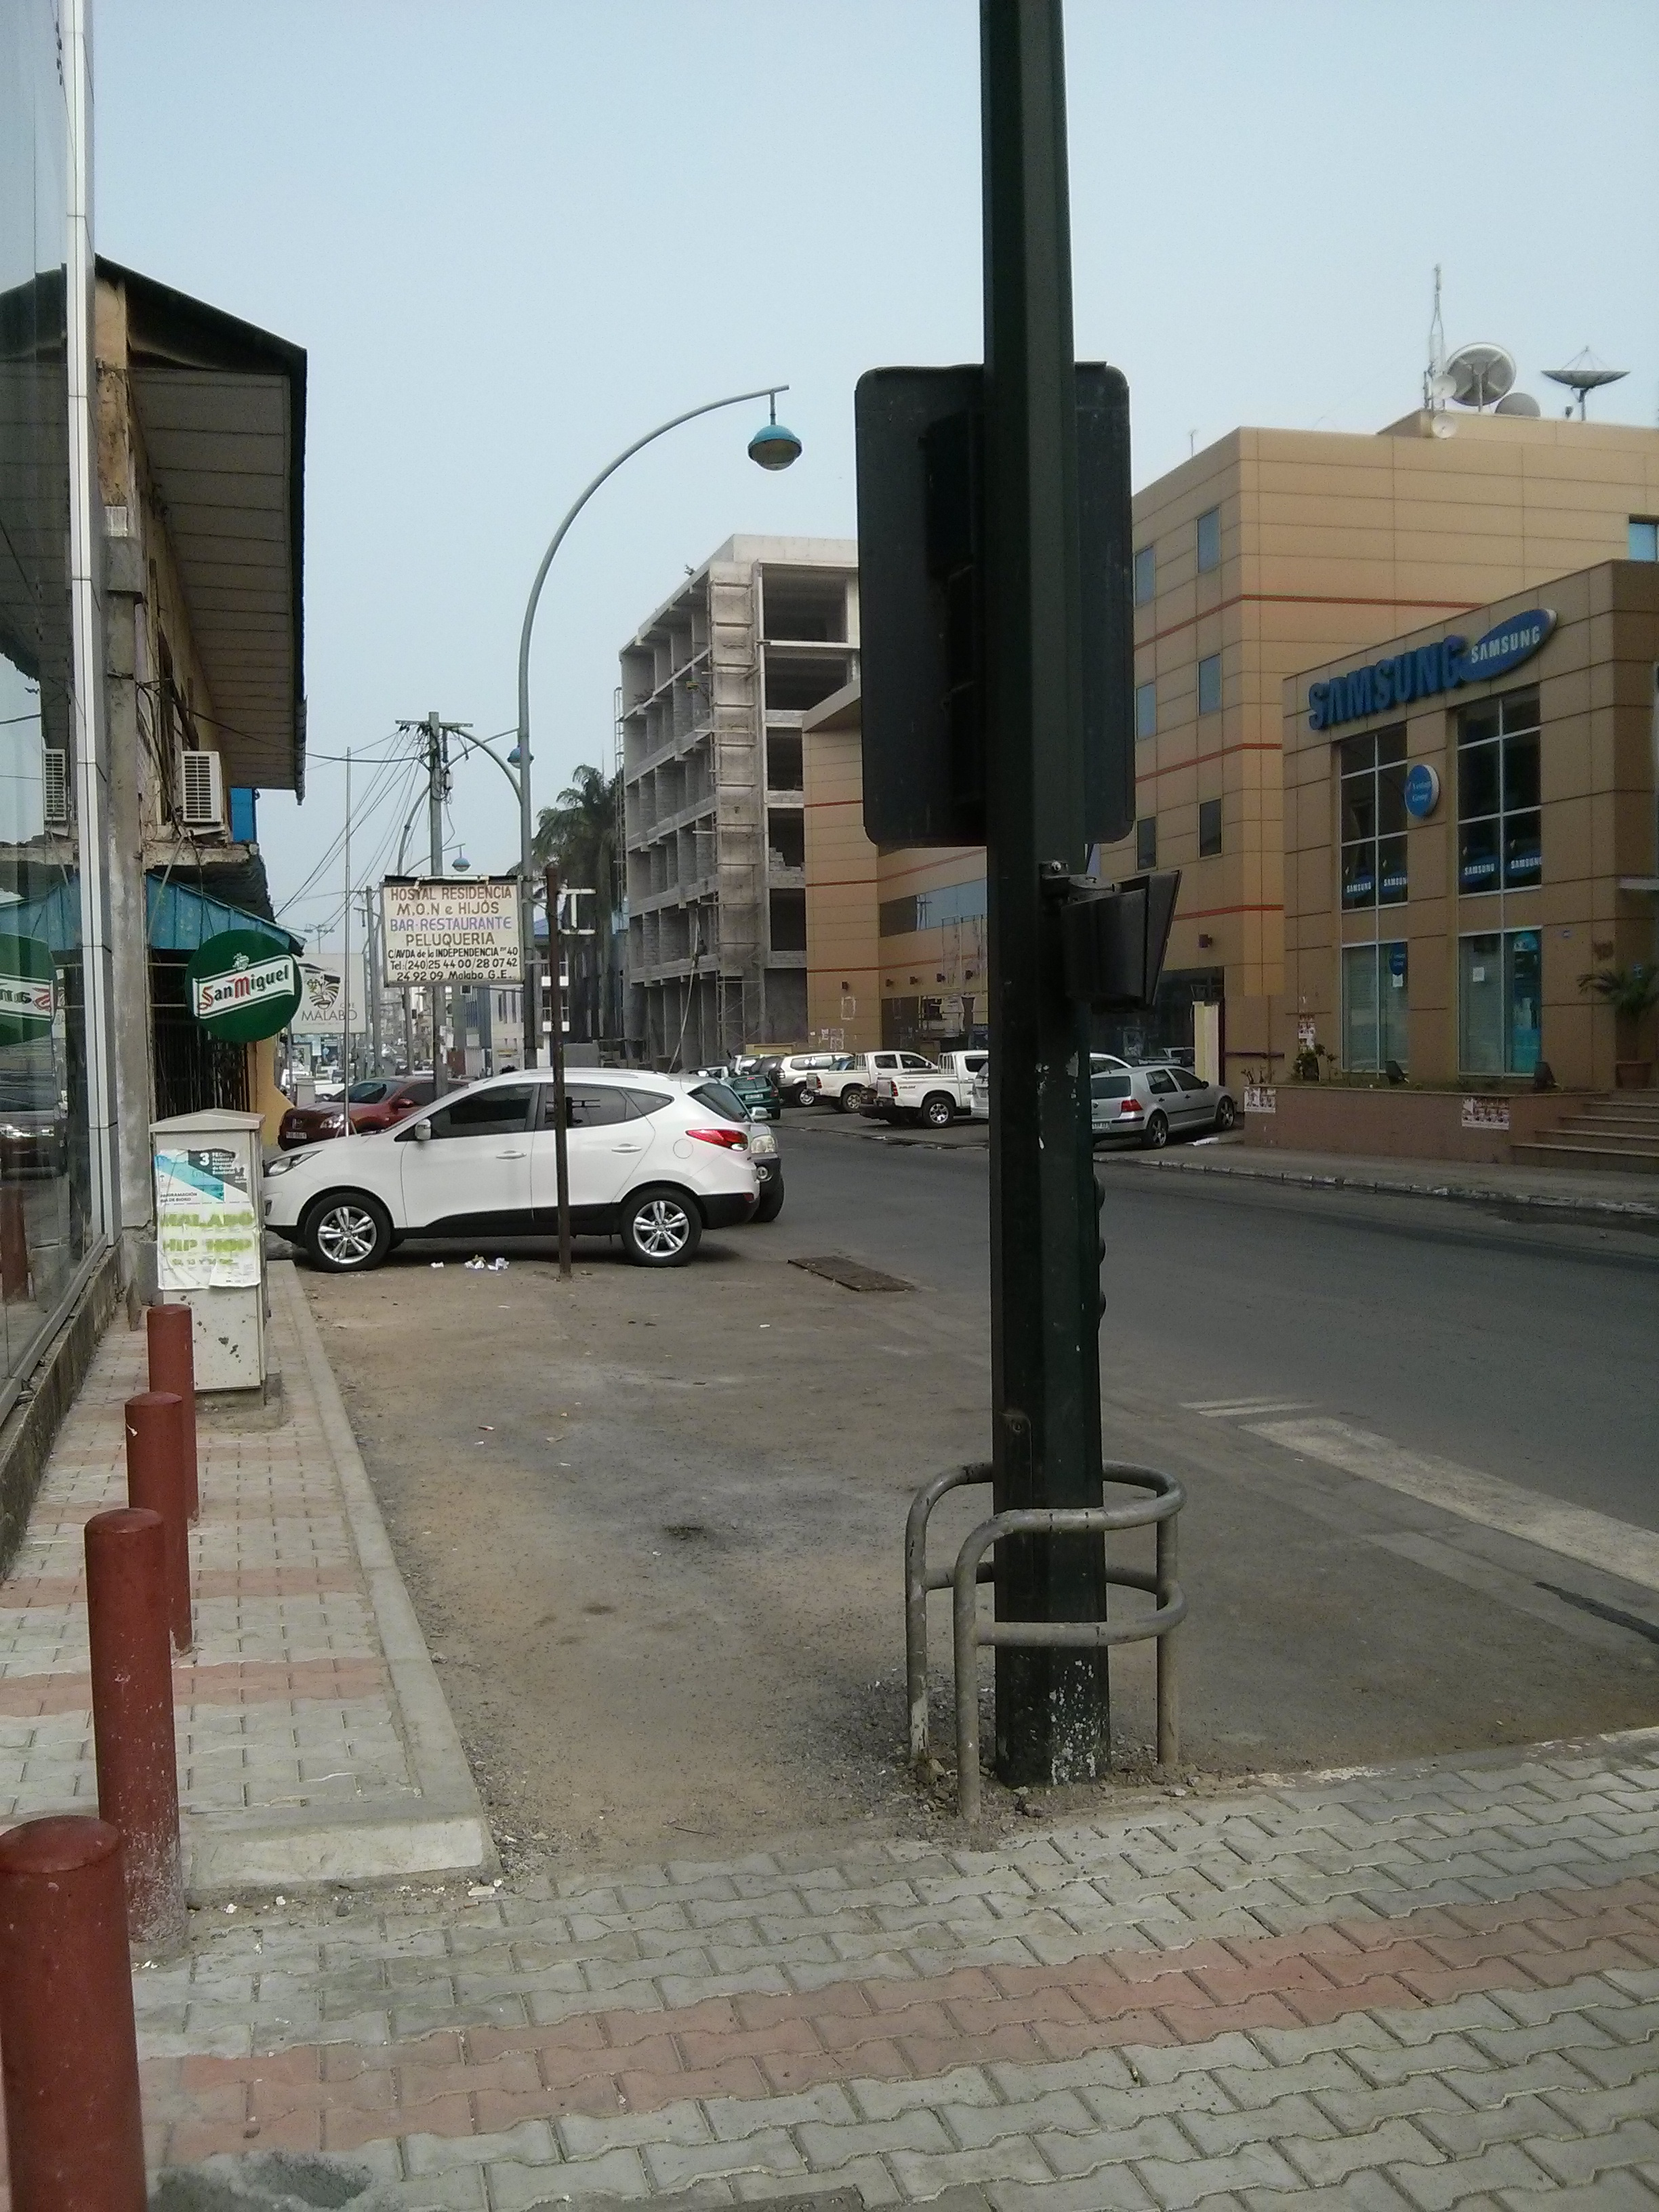 The street during Siesta hours.